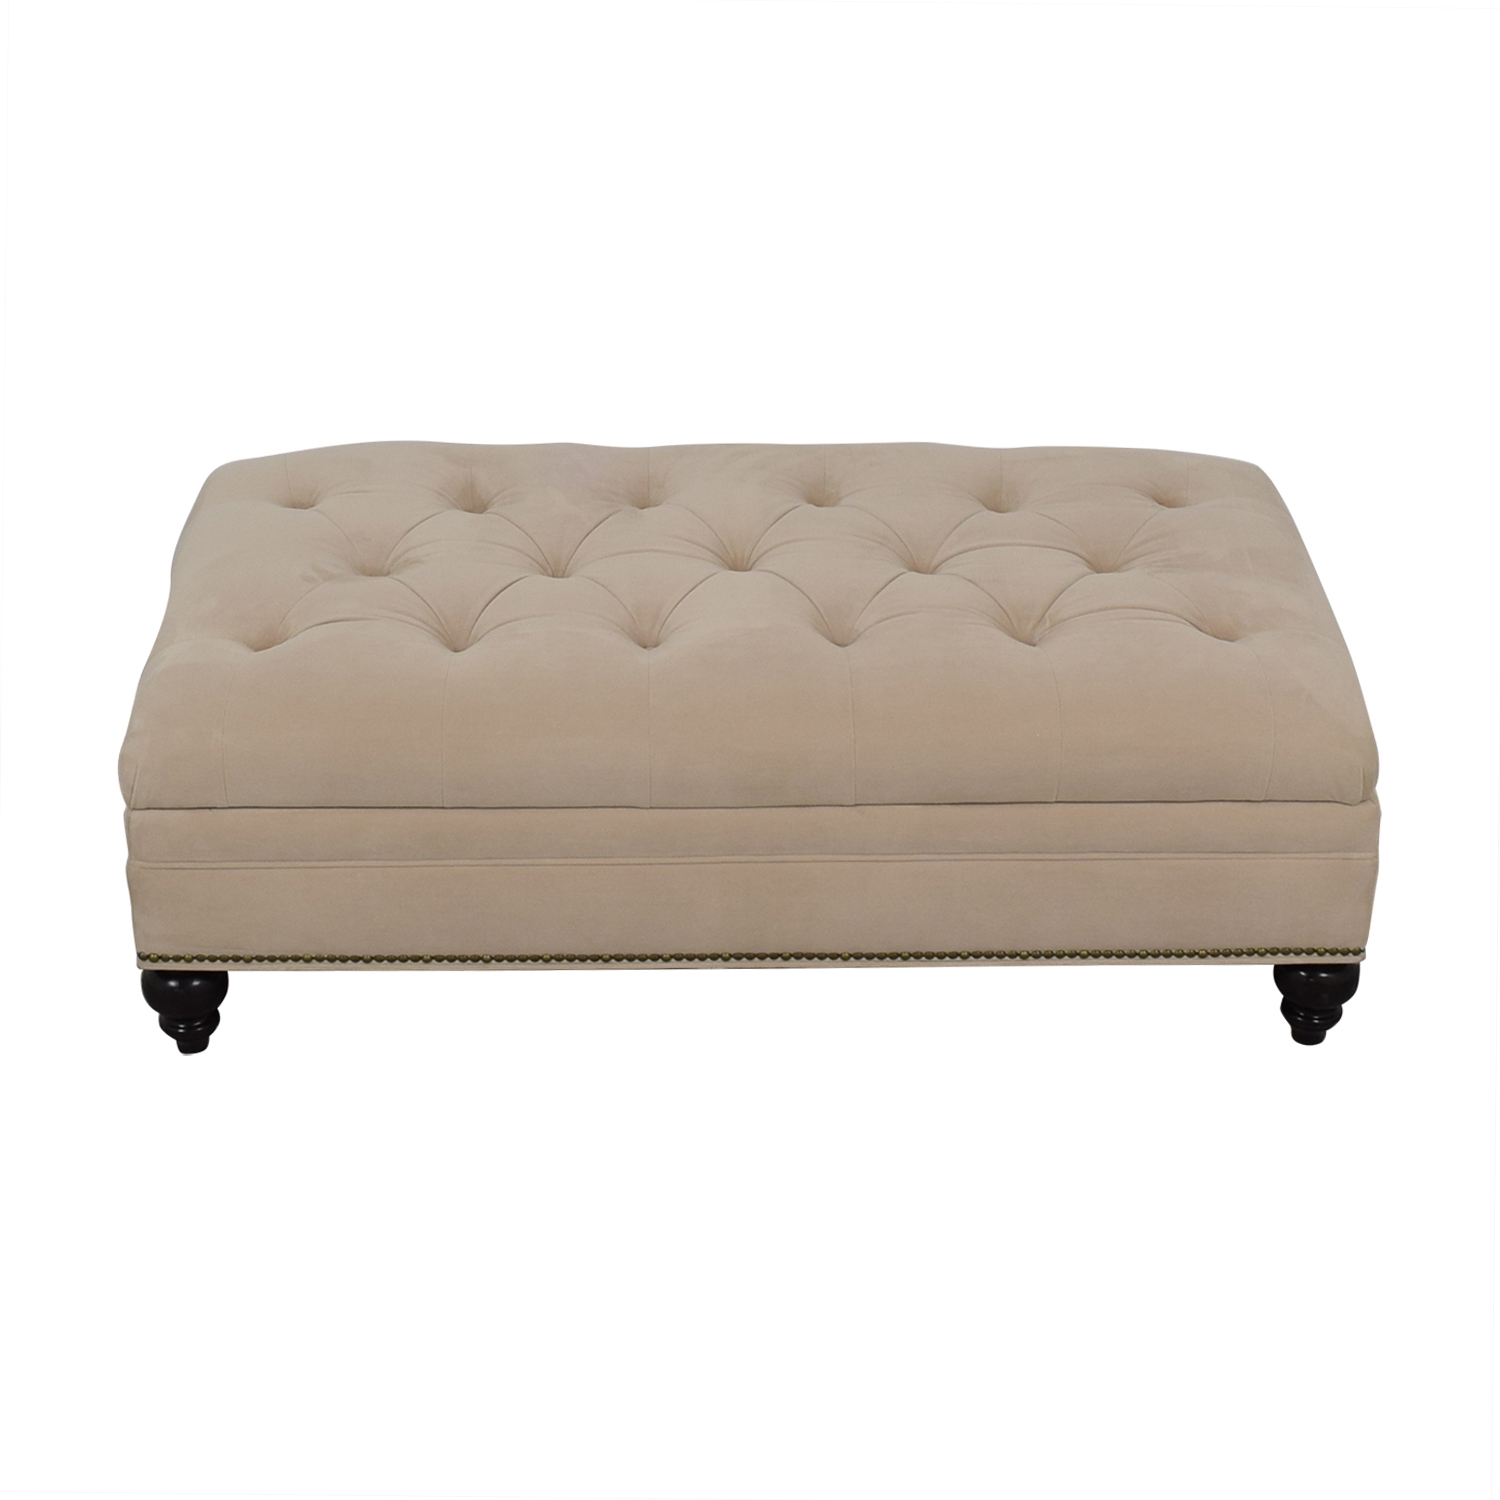 shop Jonathan Louis White Tufted Storage Ottoman Jonathan Louis Chairs